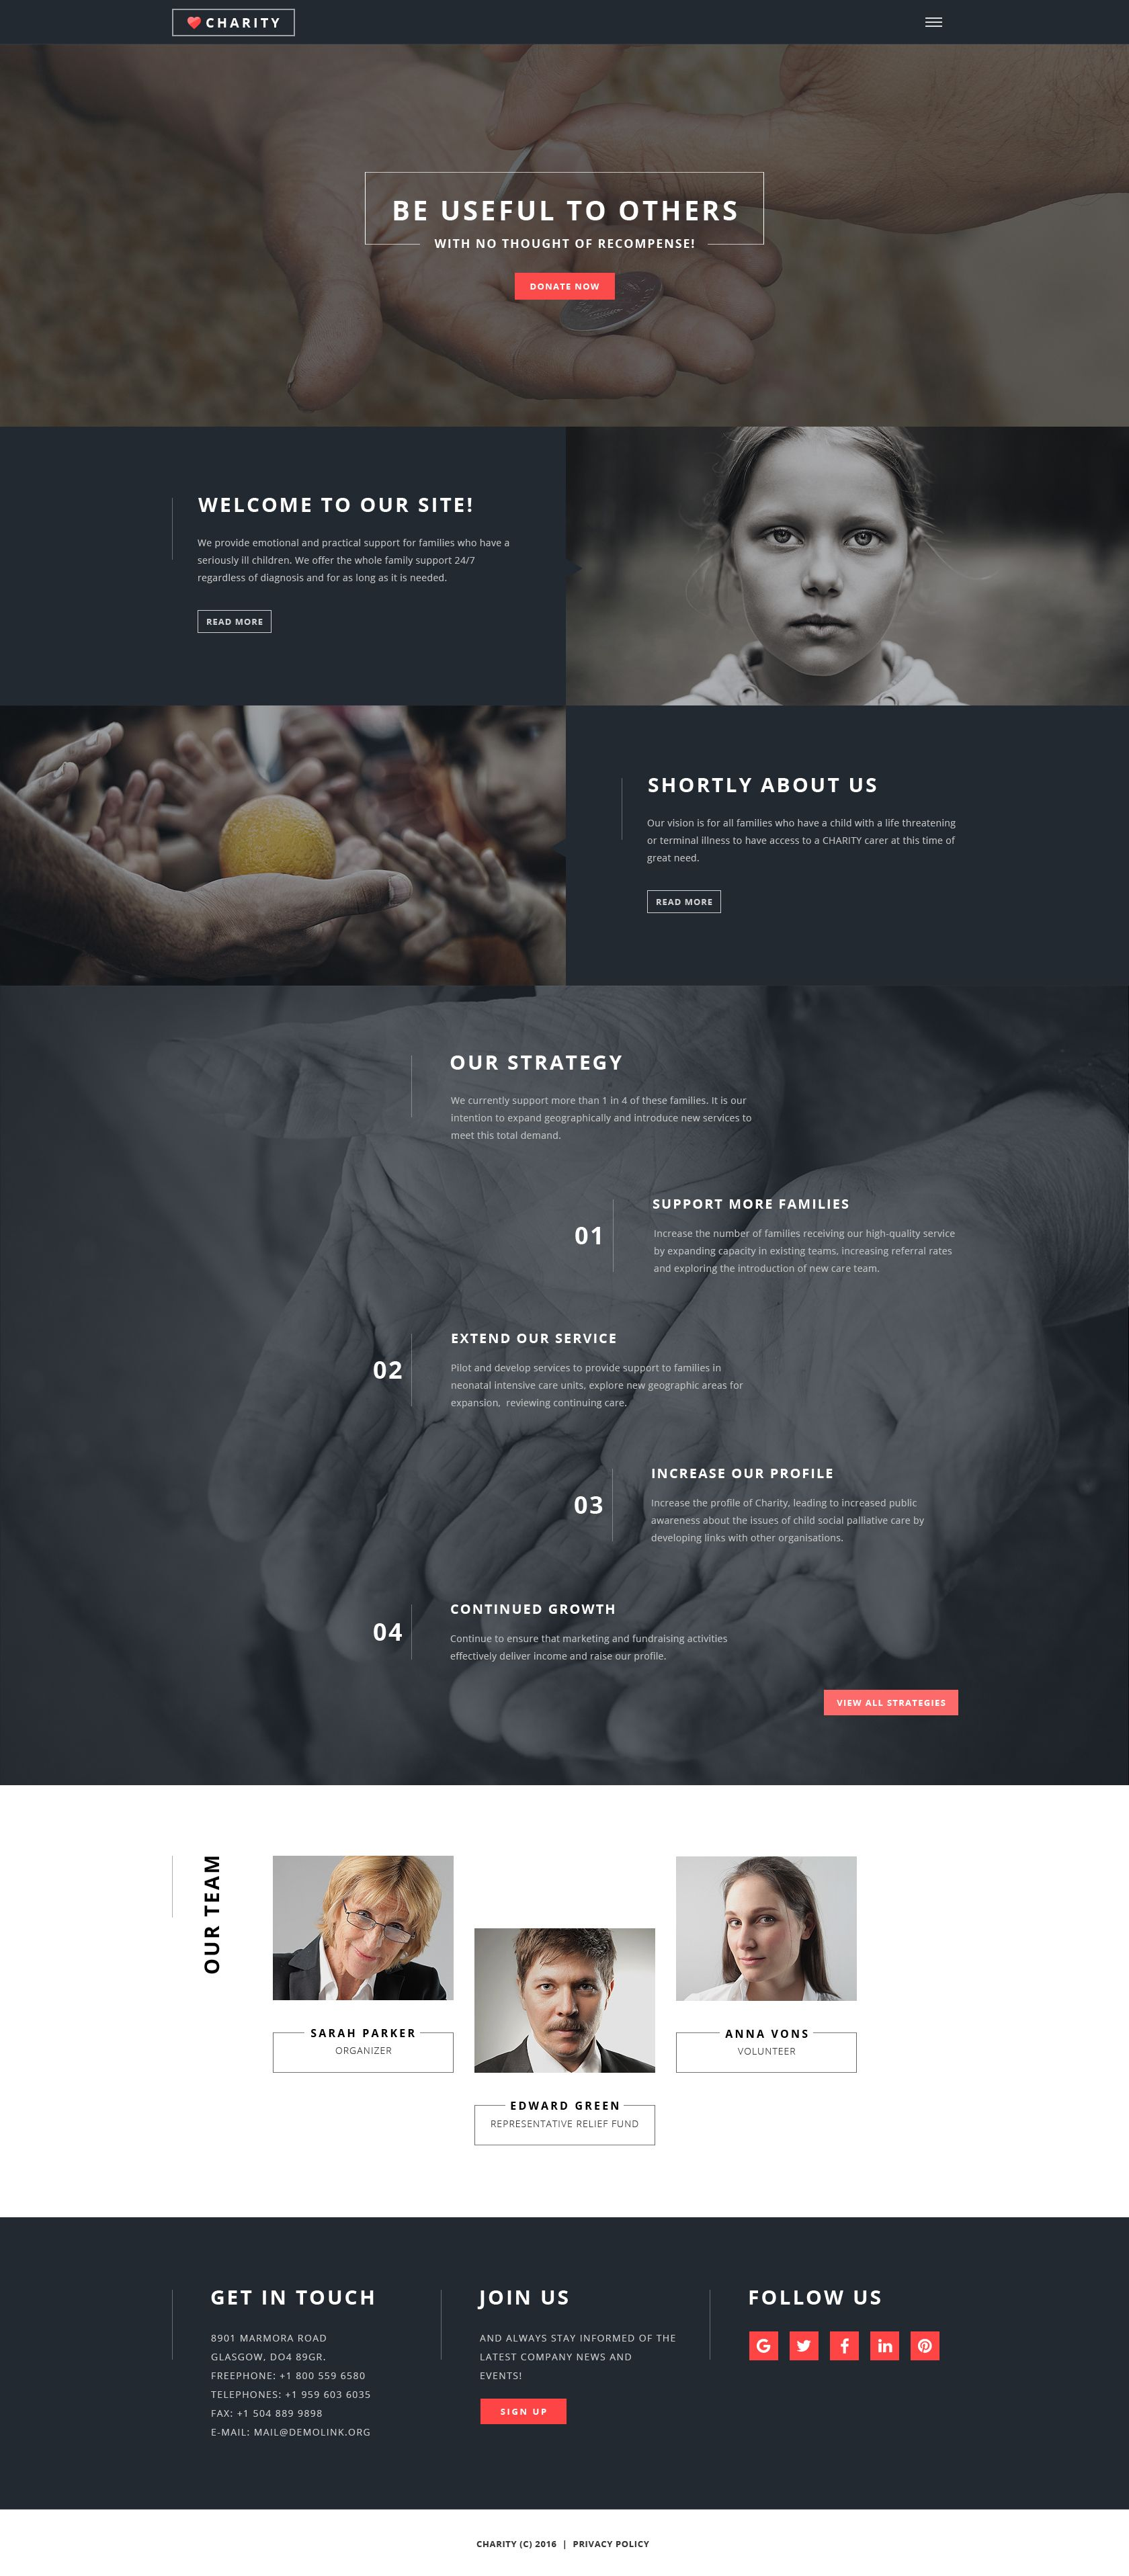 Charity Foundation Multipage Html5 Template Nonprofit Website Design Nonprofit Website Best Website Templates